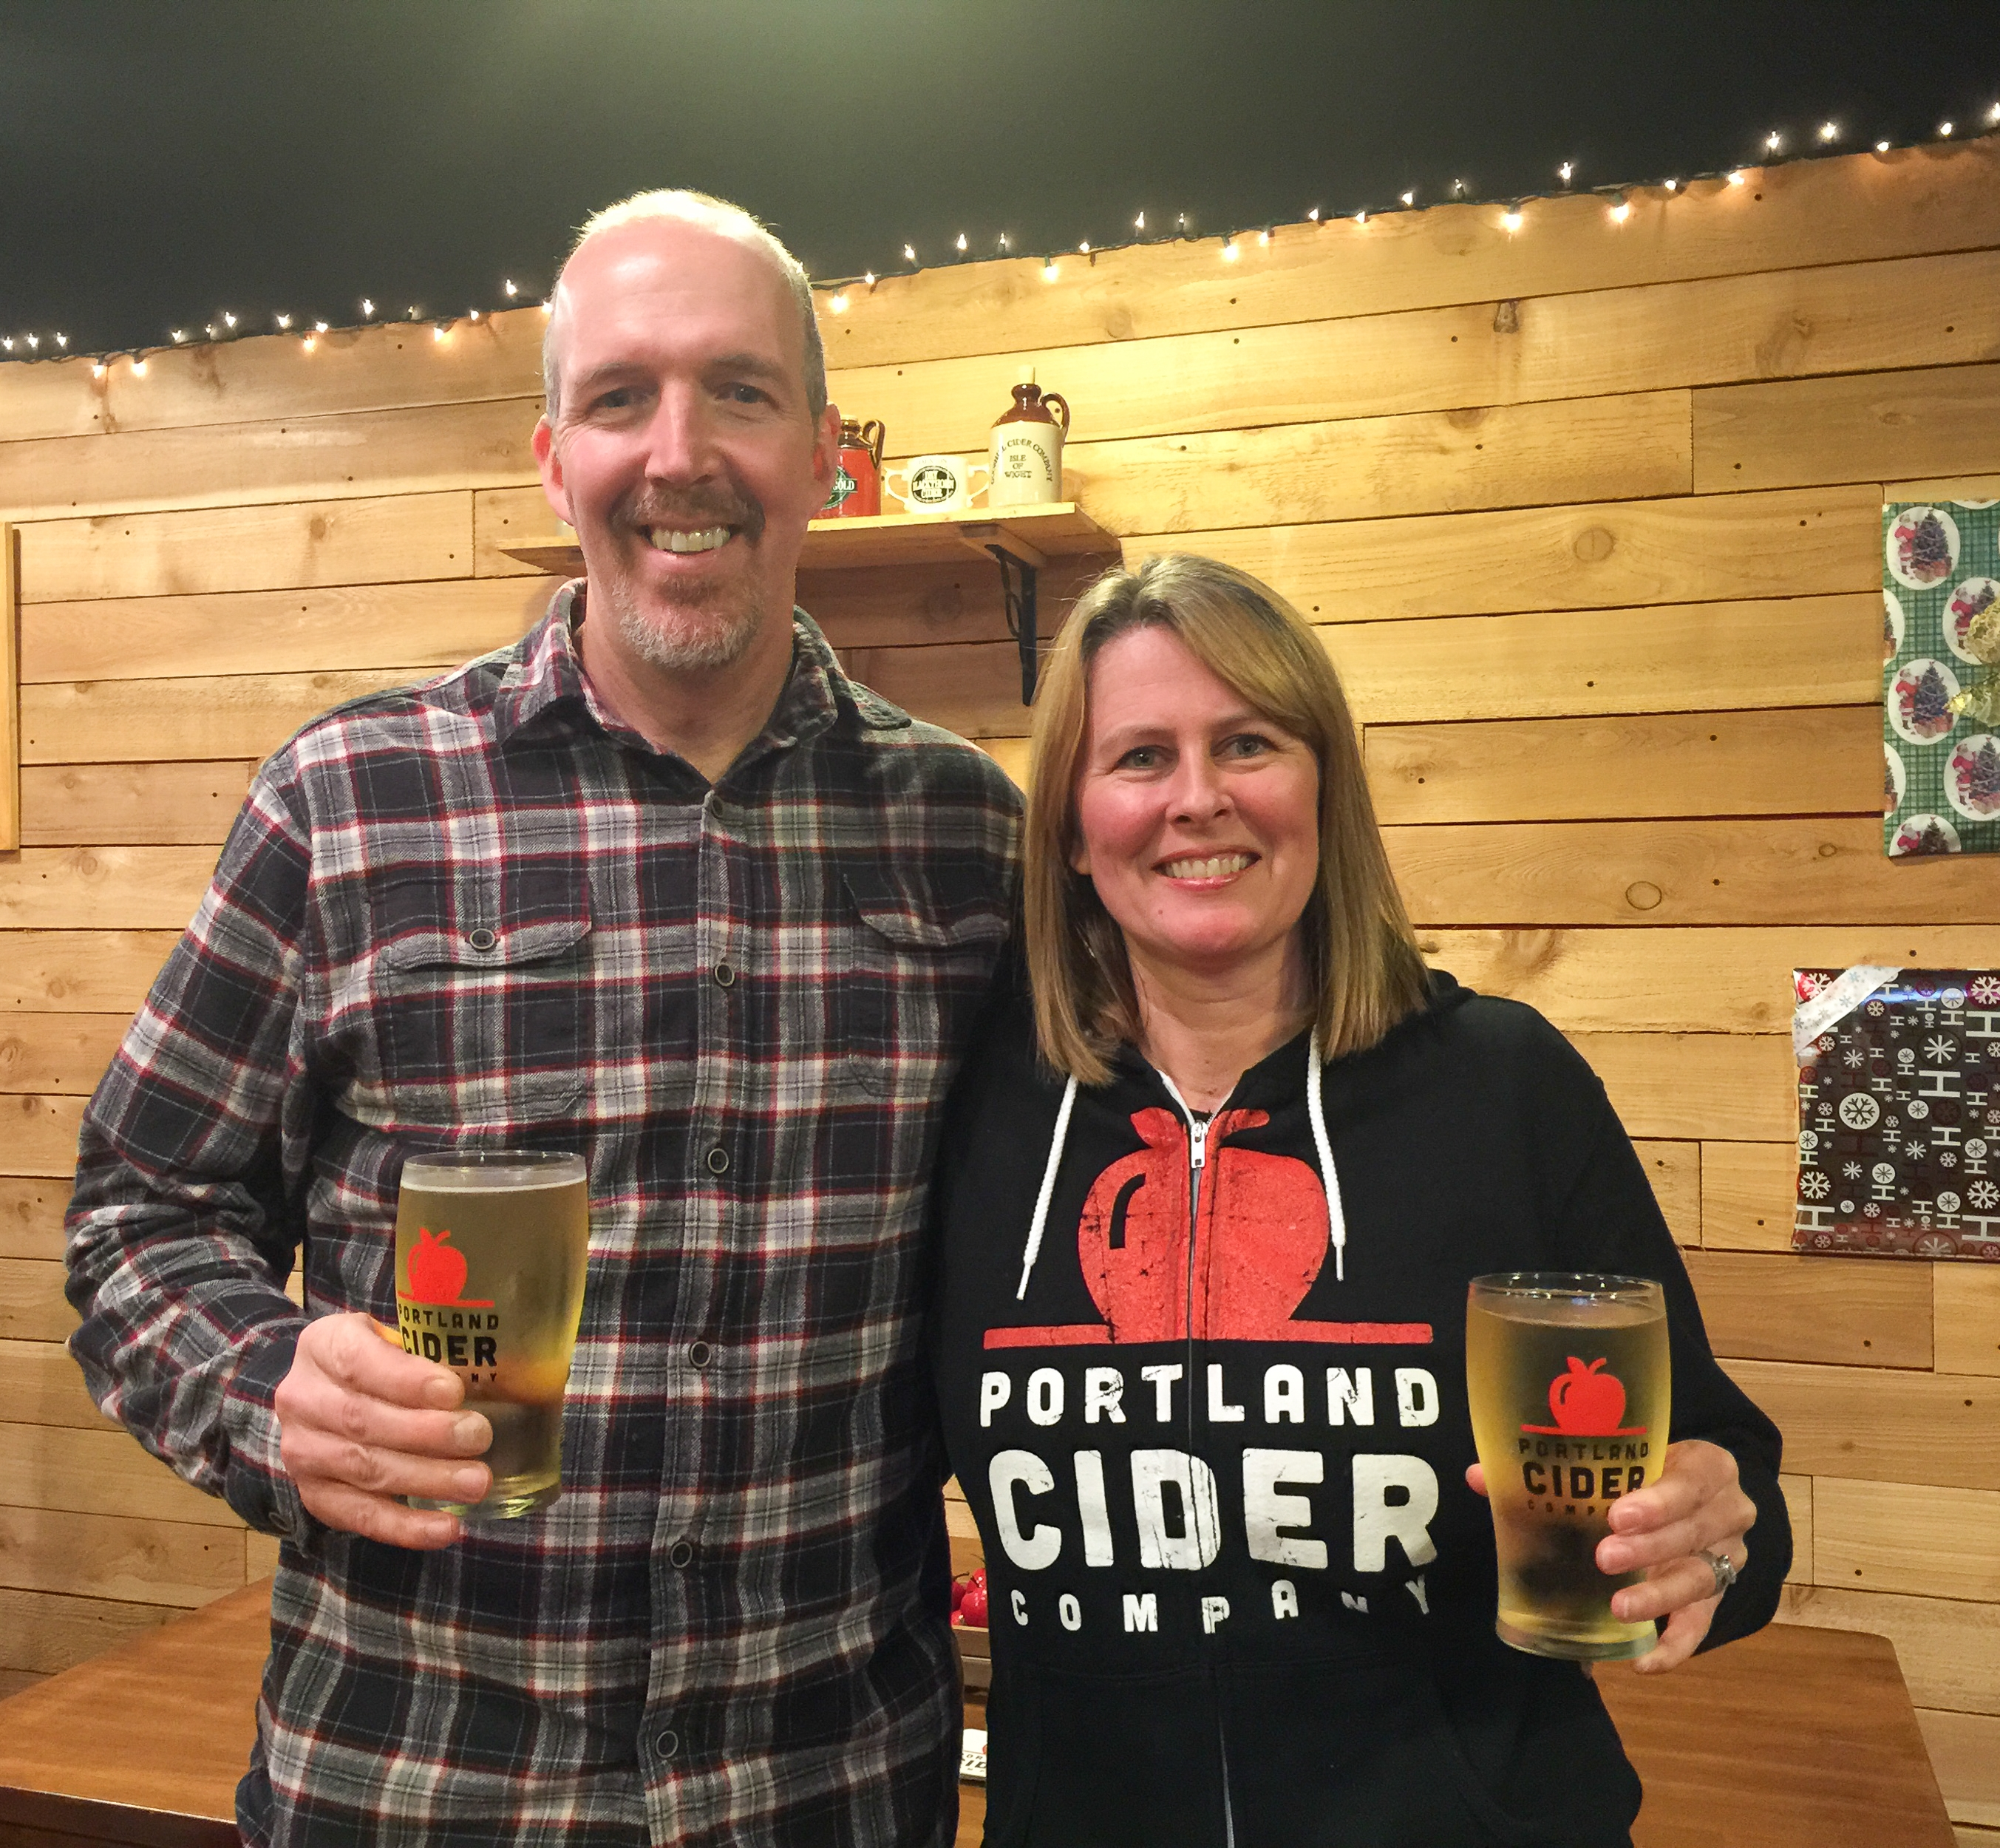 Jeff Parrish Portland Cider Company - Portland Beer Podcast Episode 55